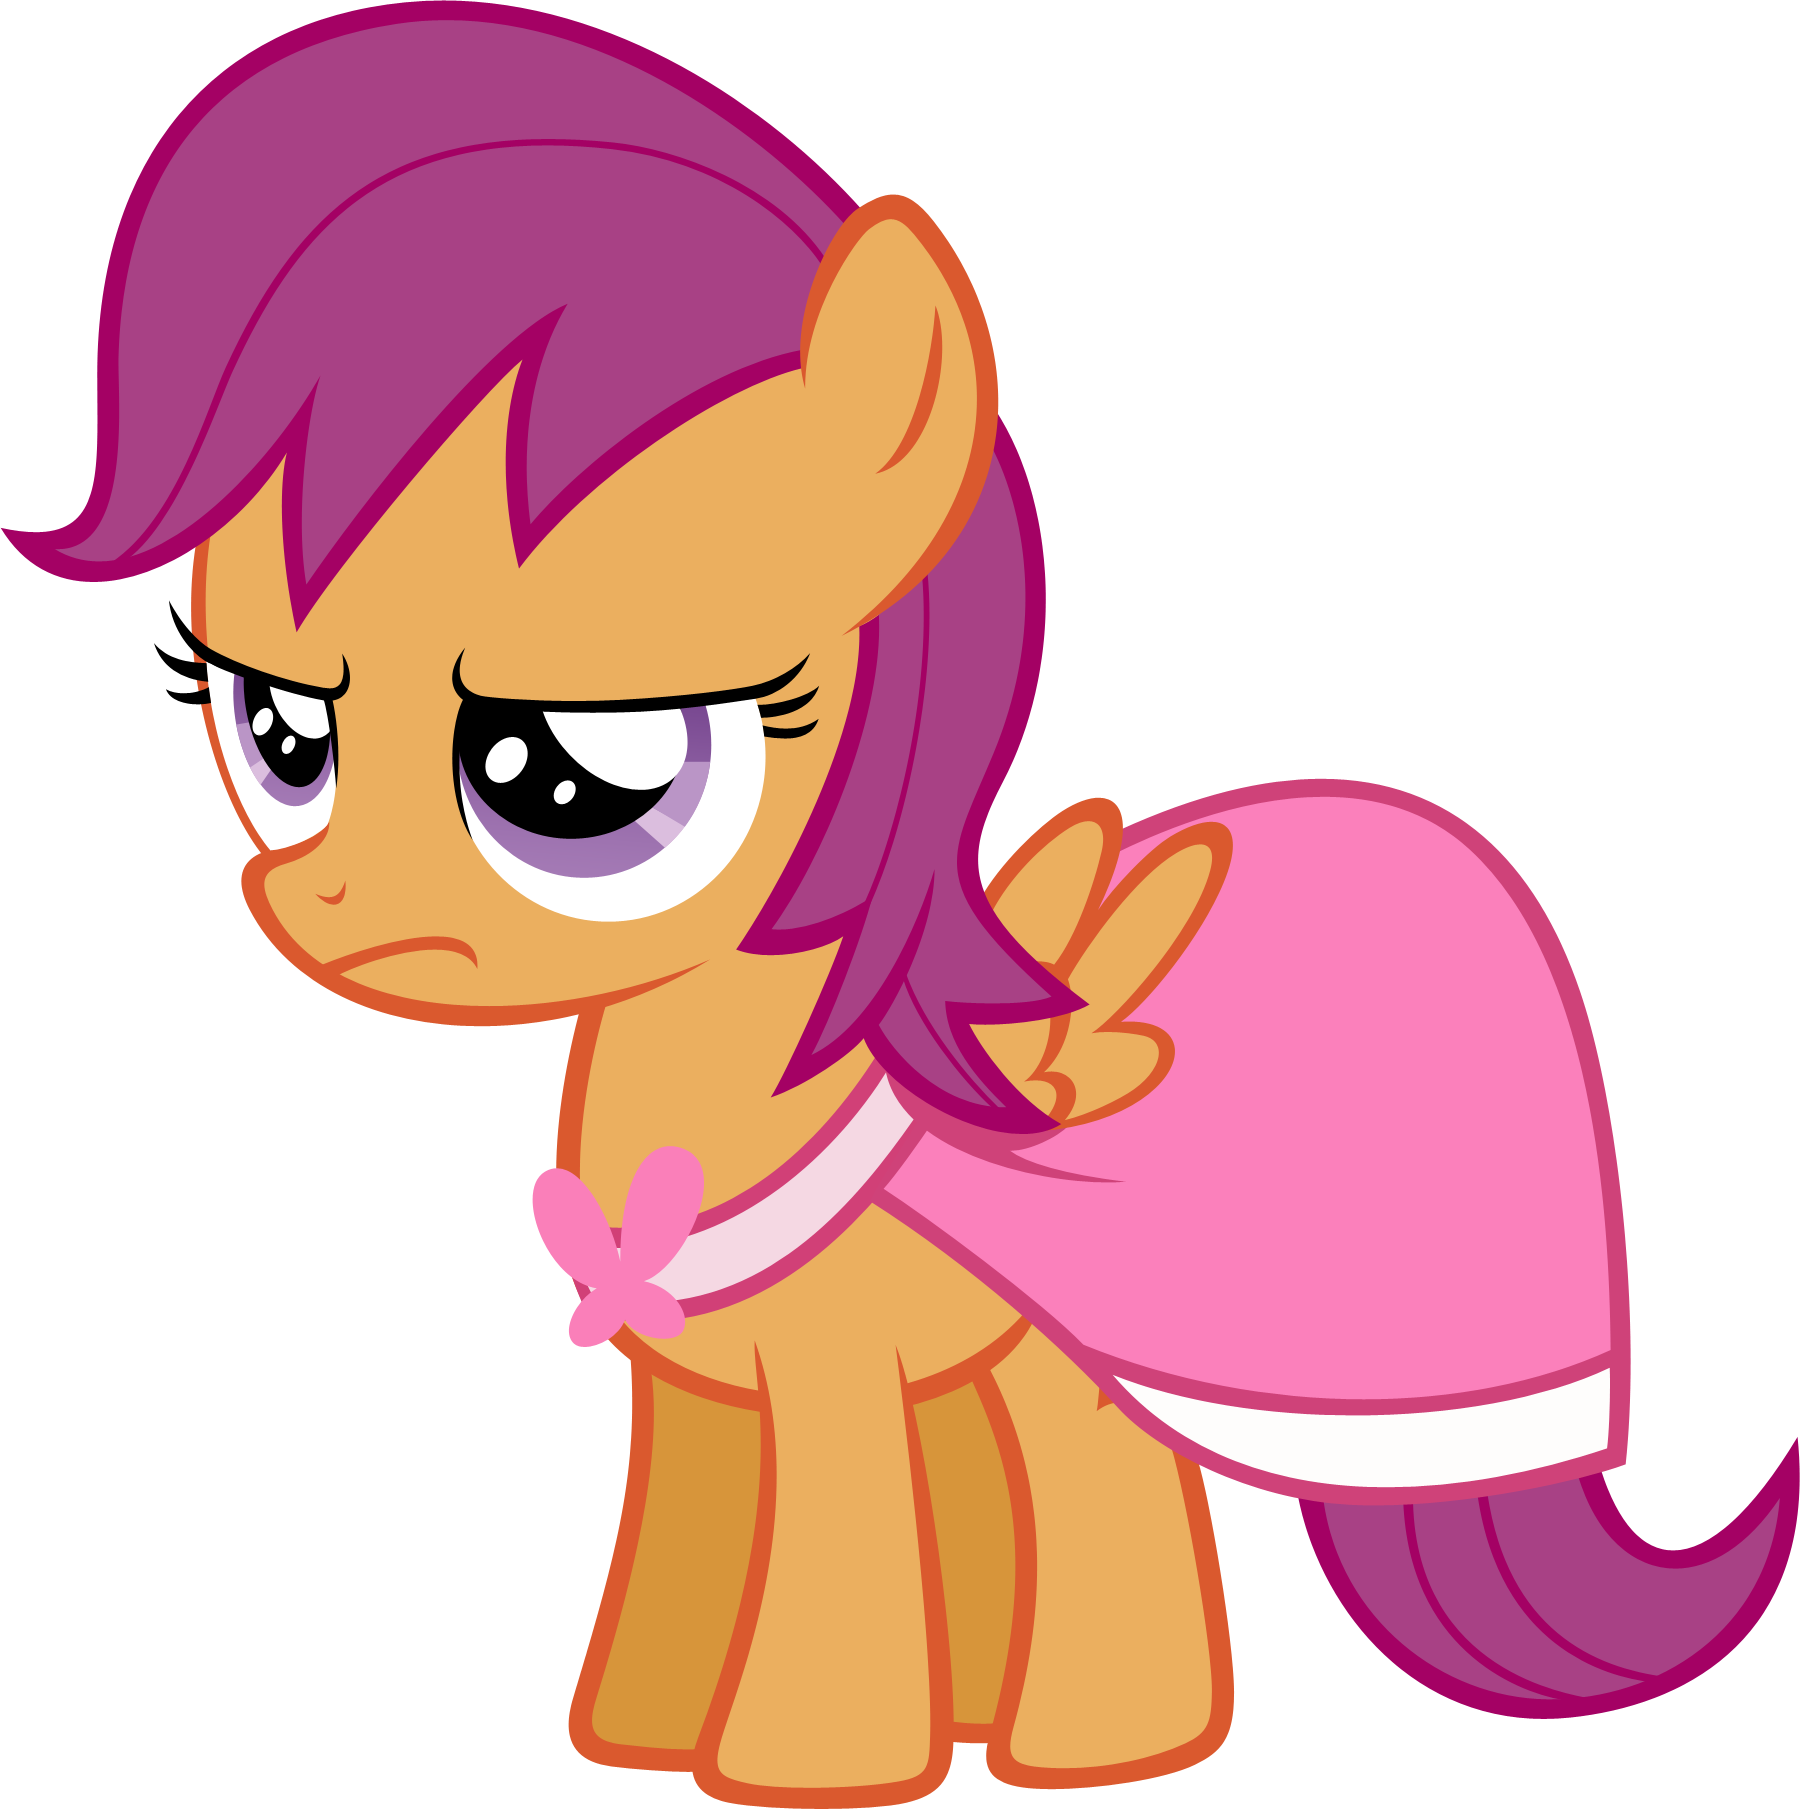 Scootaloo Dress By Xgsymarley On Deviantart Keep submissions and comments sfw, as well as out of excessively risqué territory. scootaloo dress by xgsymarley on deviantart